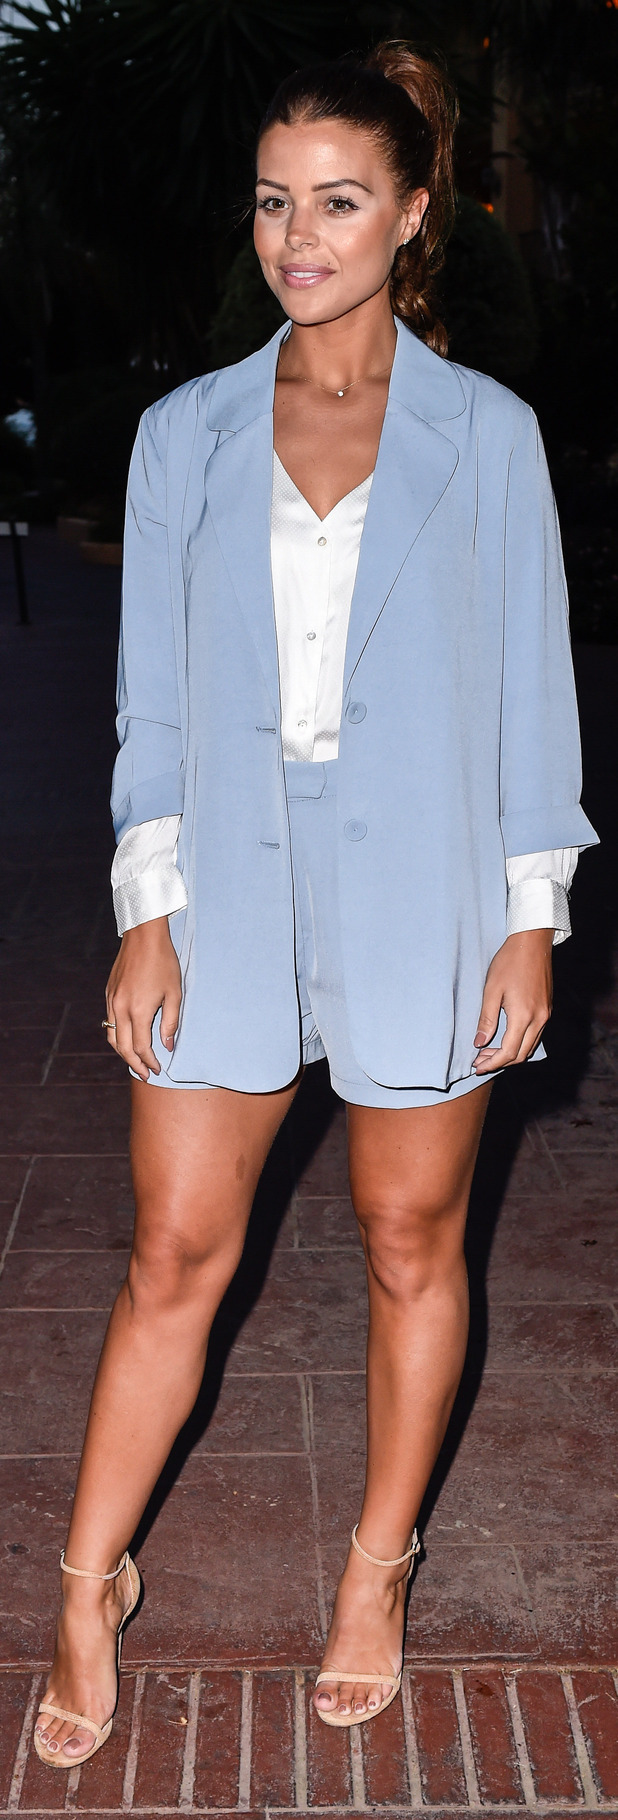 TOWIE's Chloe Lewis out and about in Marbella, 24th September 2015